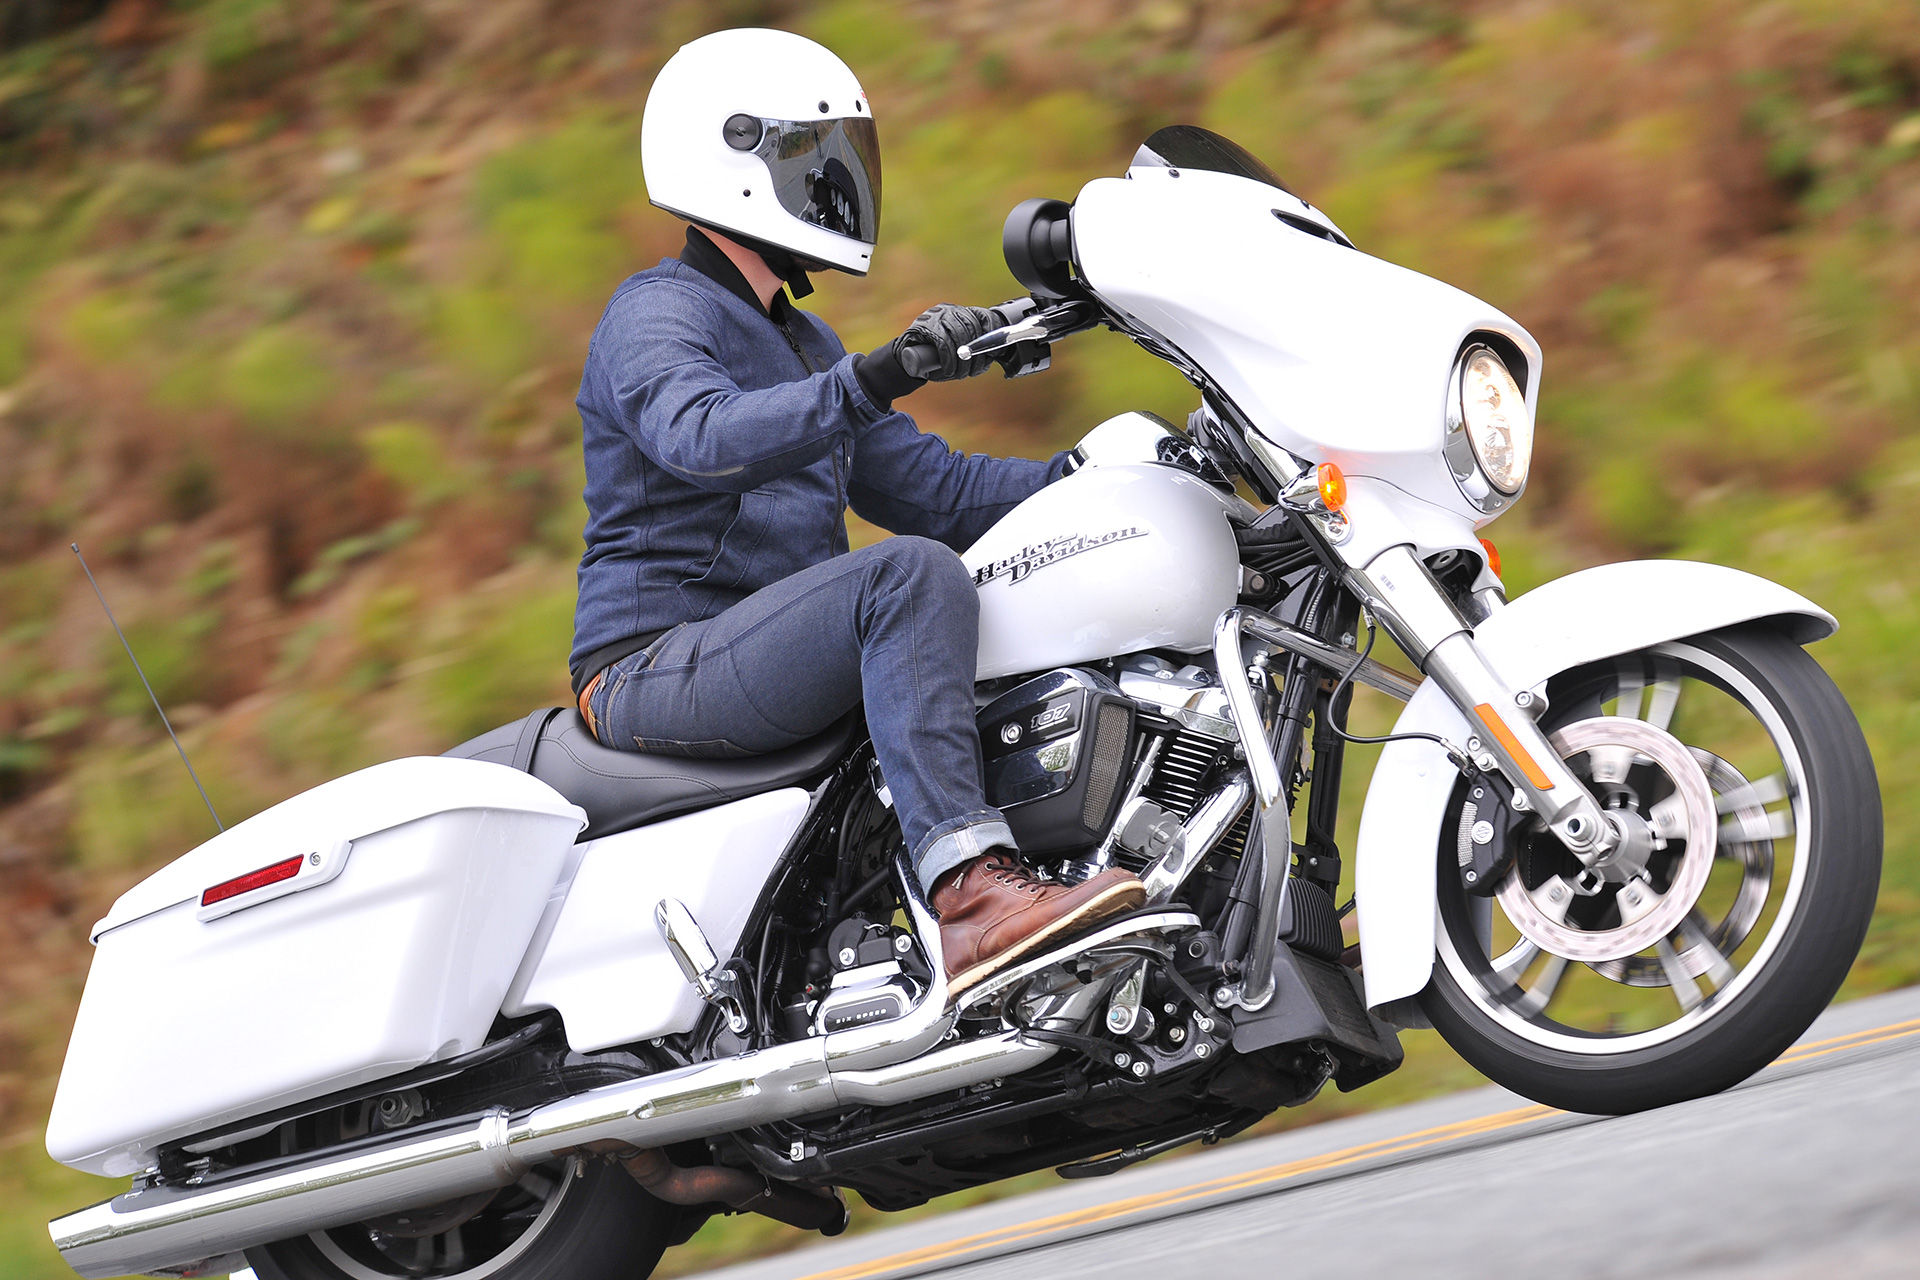 Harley-Davidson Screamin' Eagle Drag Racing Test | Cycle World